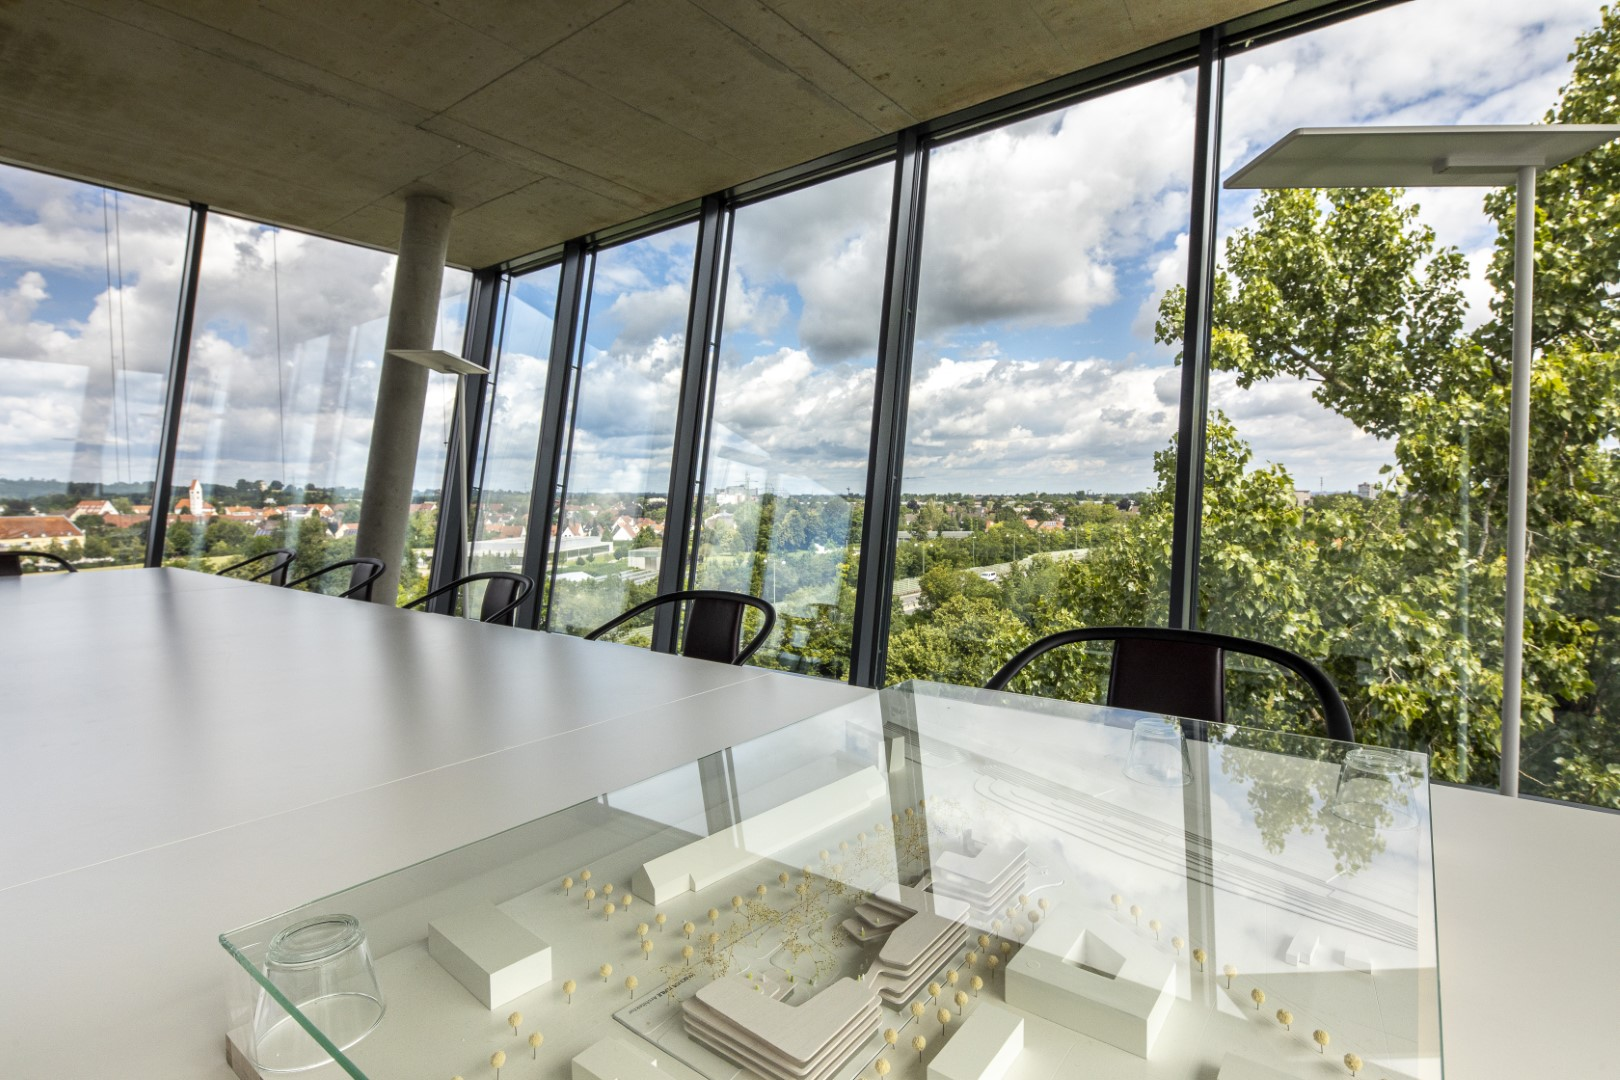 ECO Office GmbH & Co. KG: Ausblick vom Sheridan Tower mit Modell des Sheridan Campus